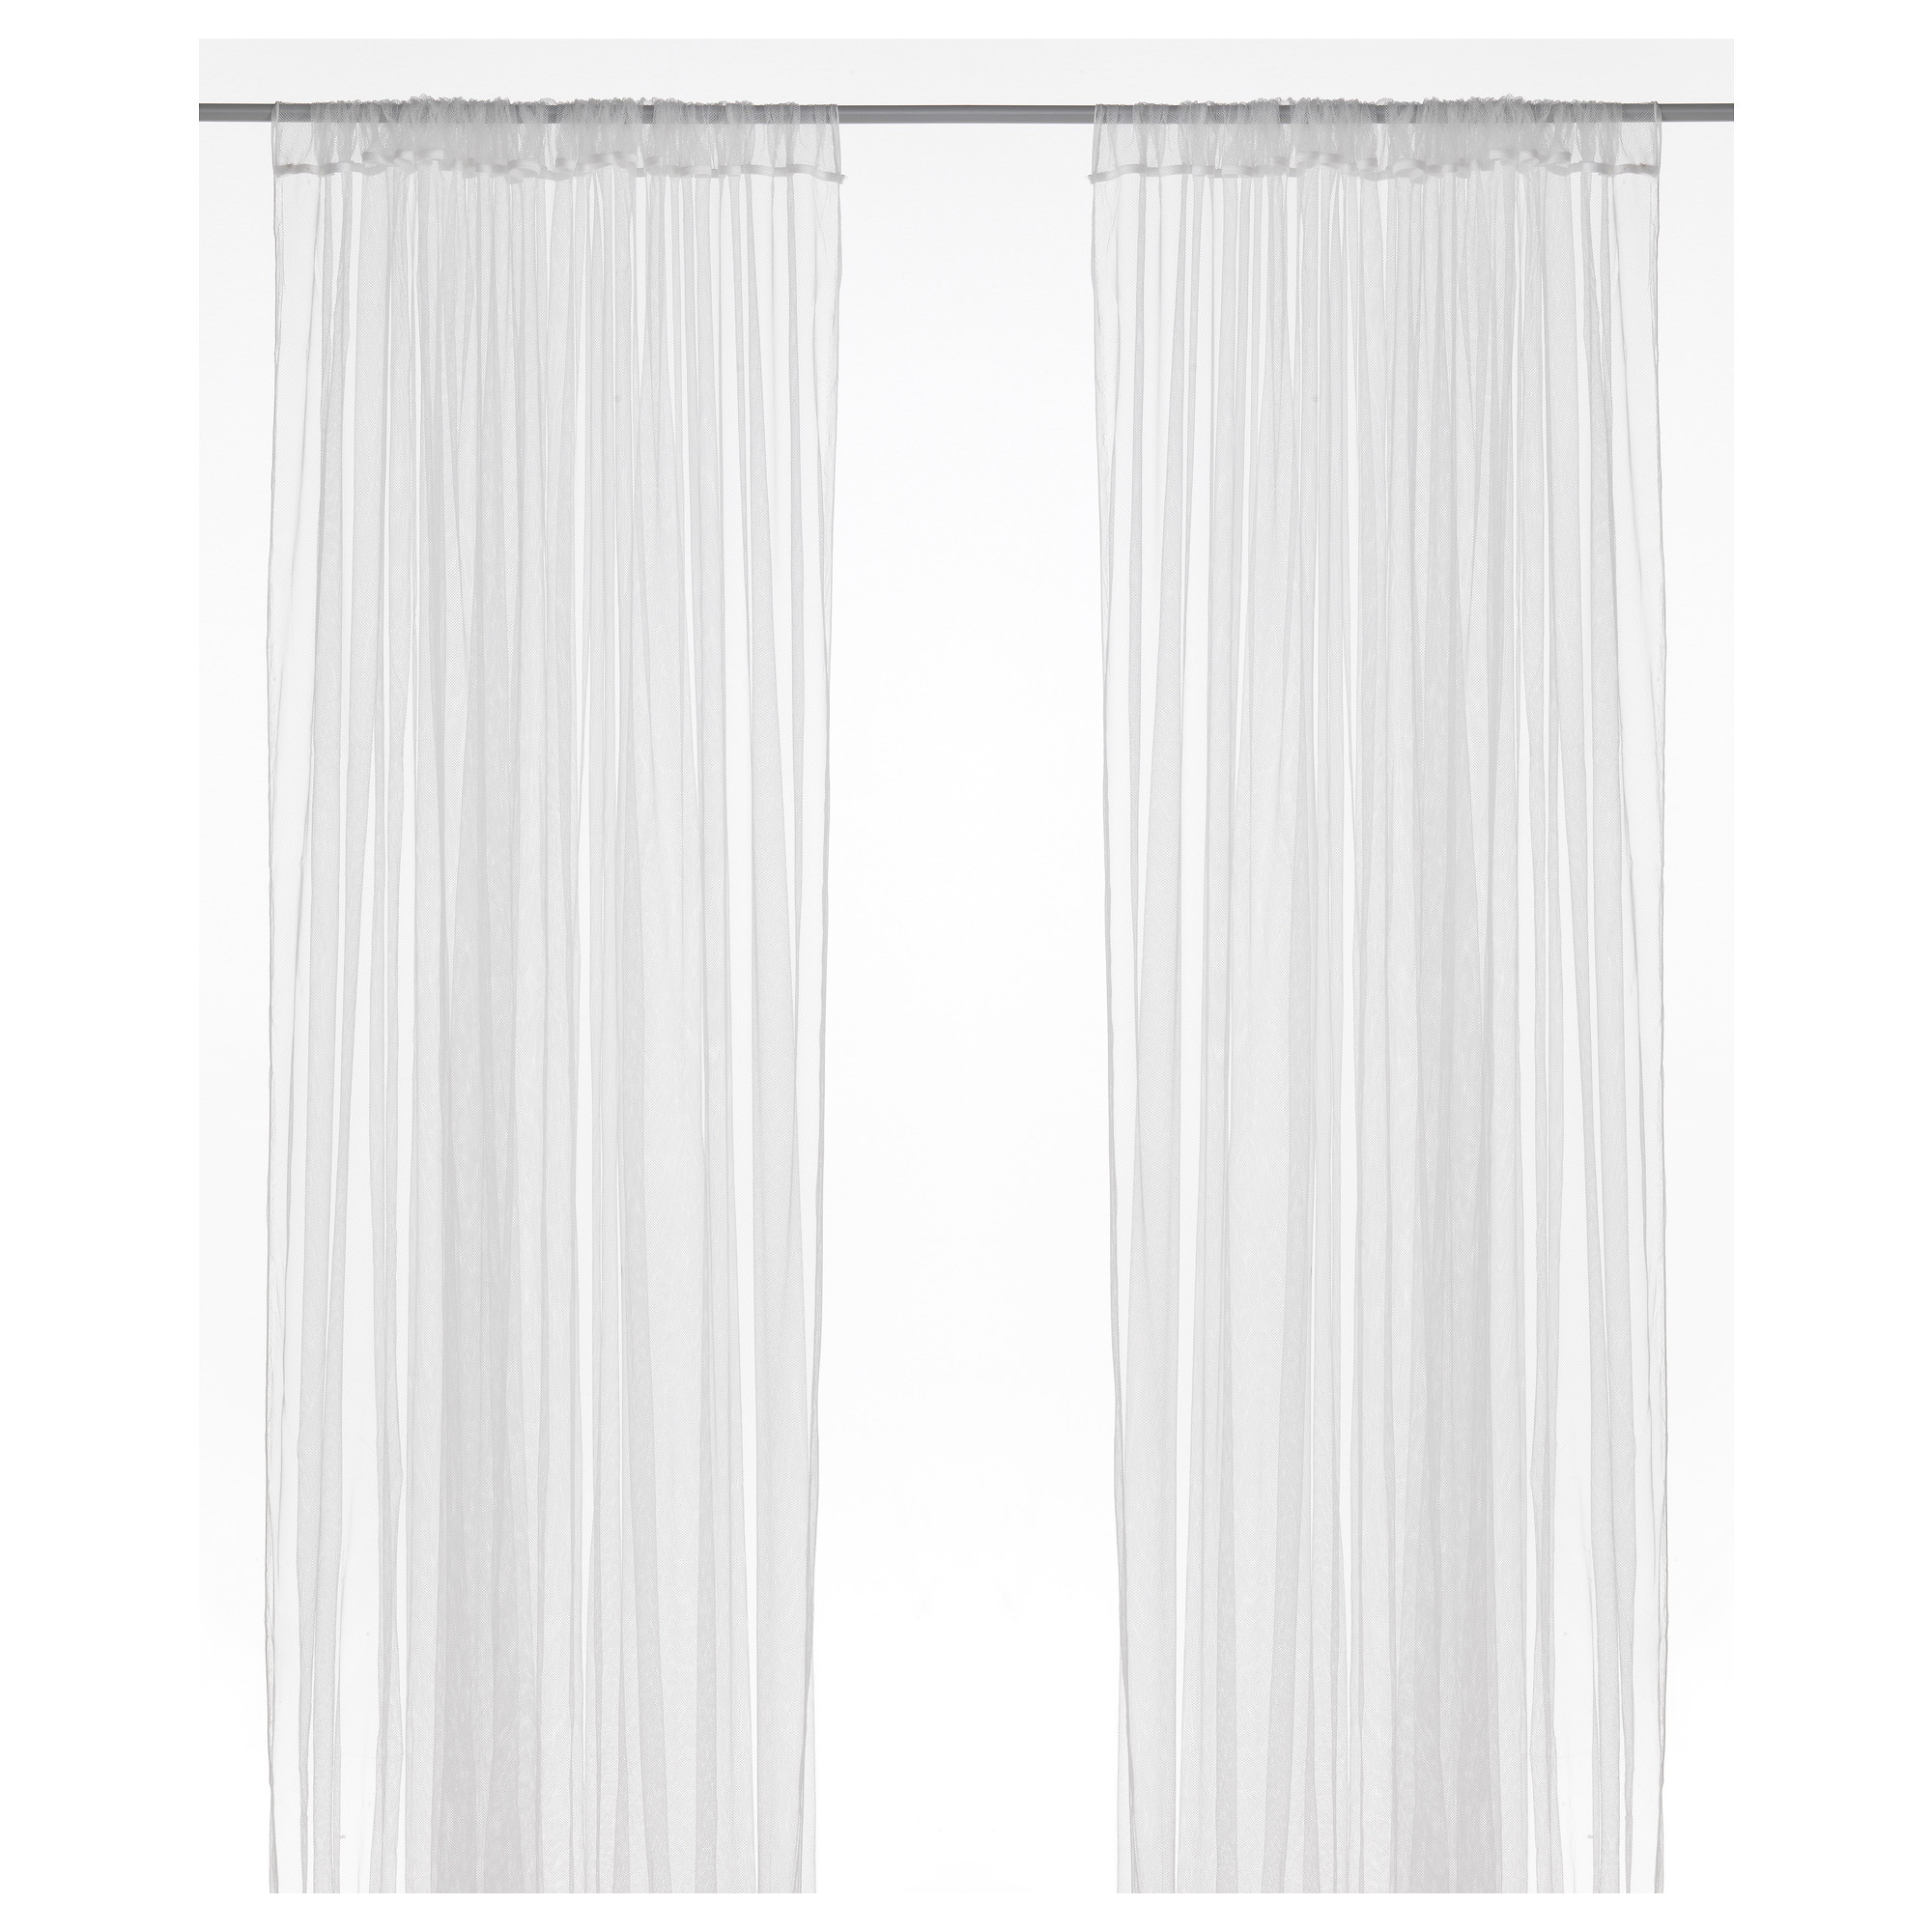 Sheer white bedroom curtains - Lill Lace Curtains 1 Pair White